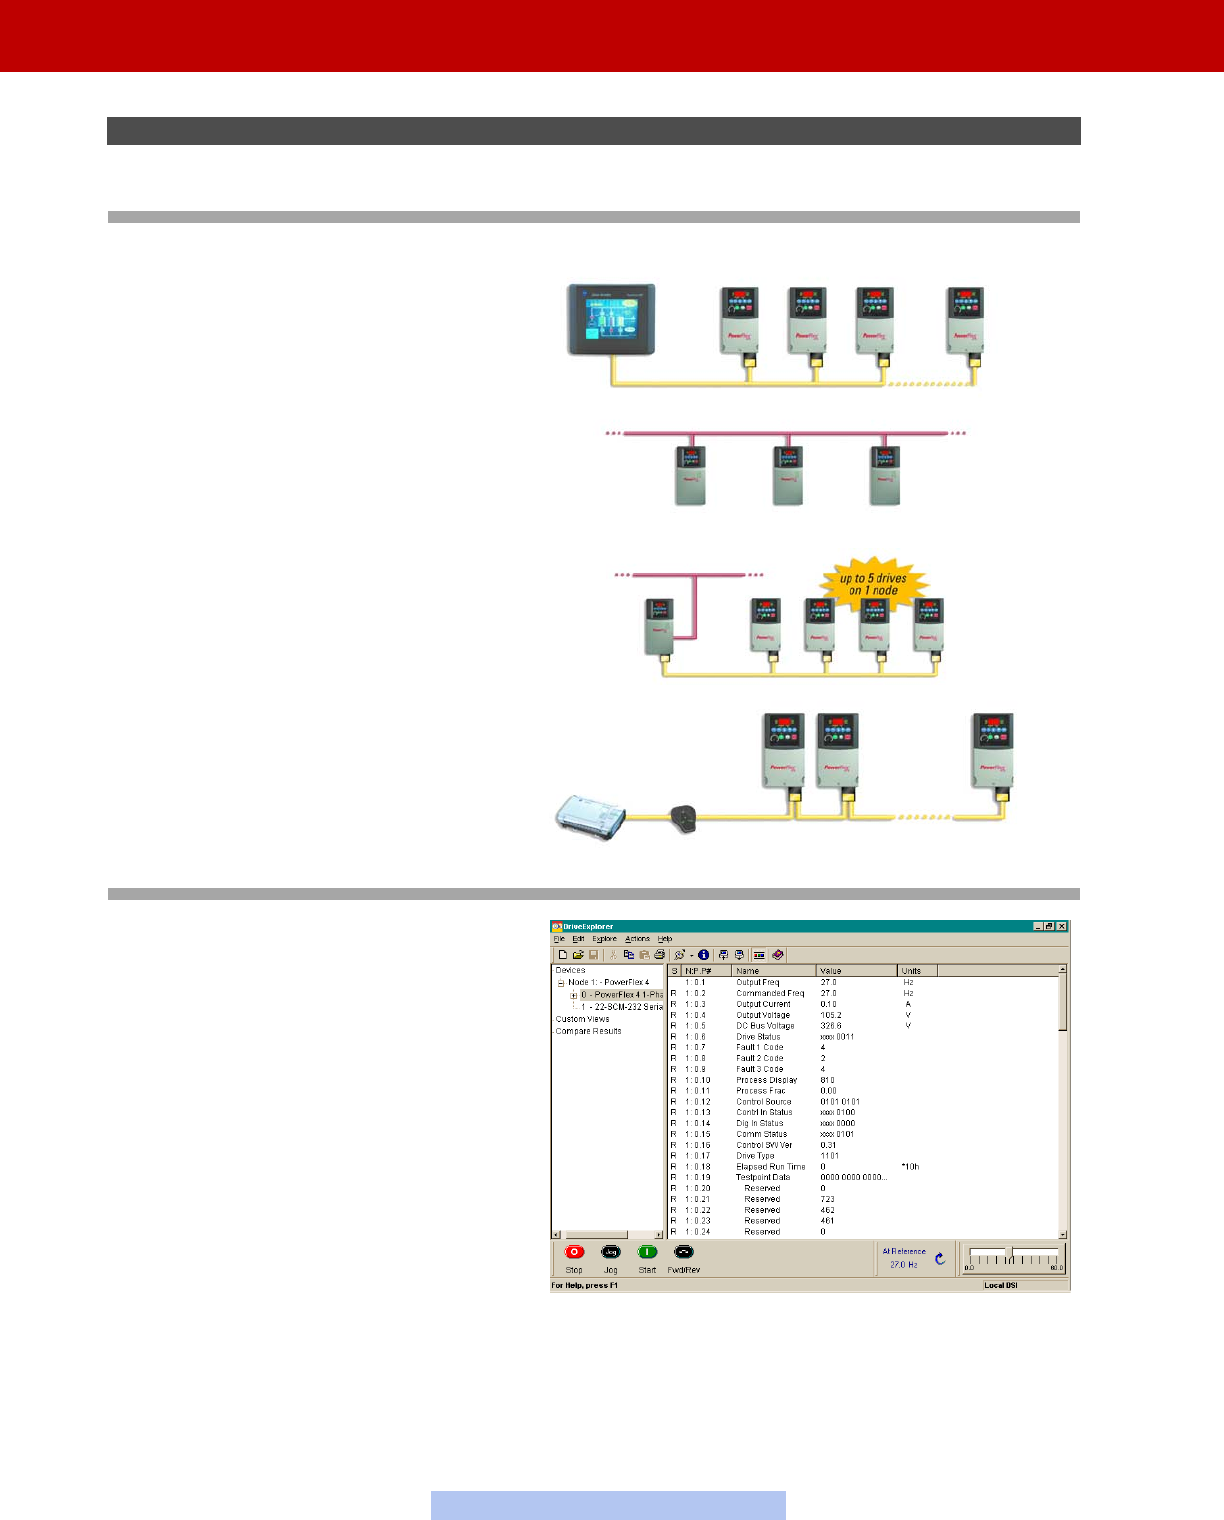 22 Td001b En P Allen Bradley Power Flex 4 User Manual Powerflex 40 Ethernet Wiring Diagram 6shaded Areas Are Applicable To Only